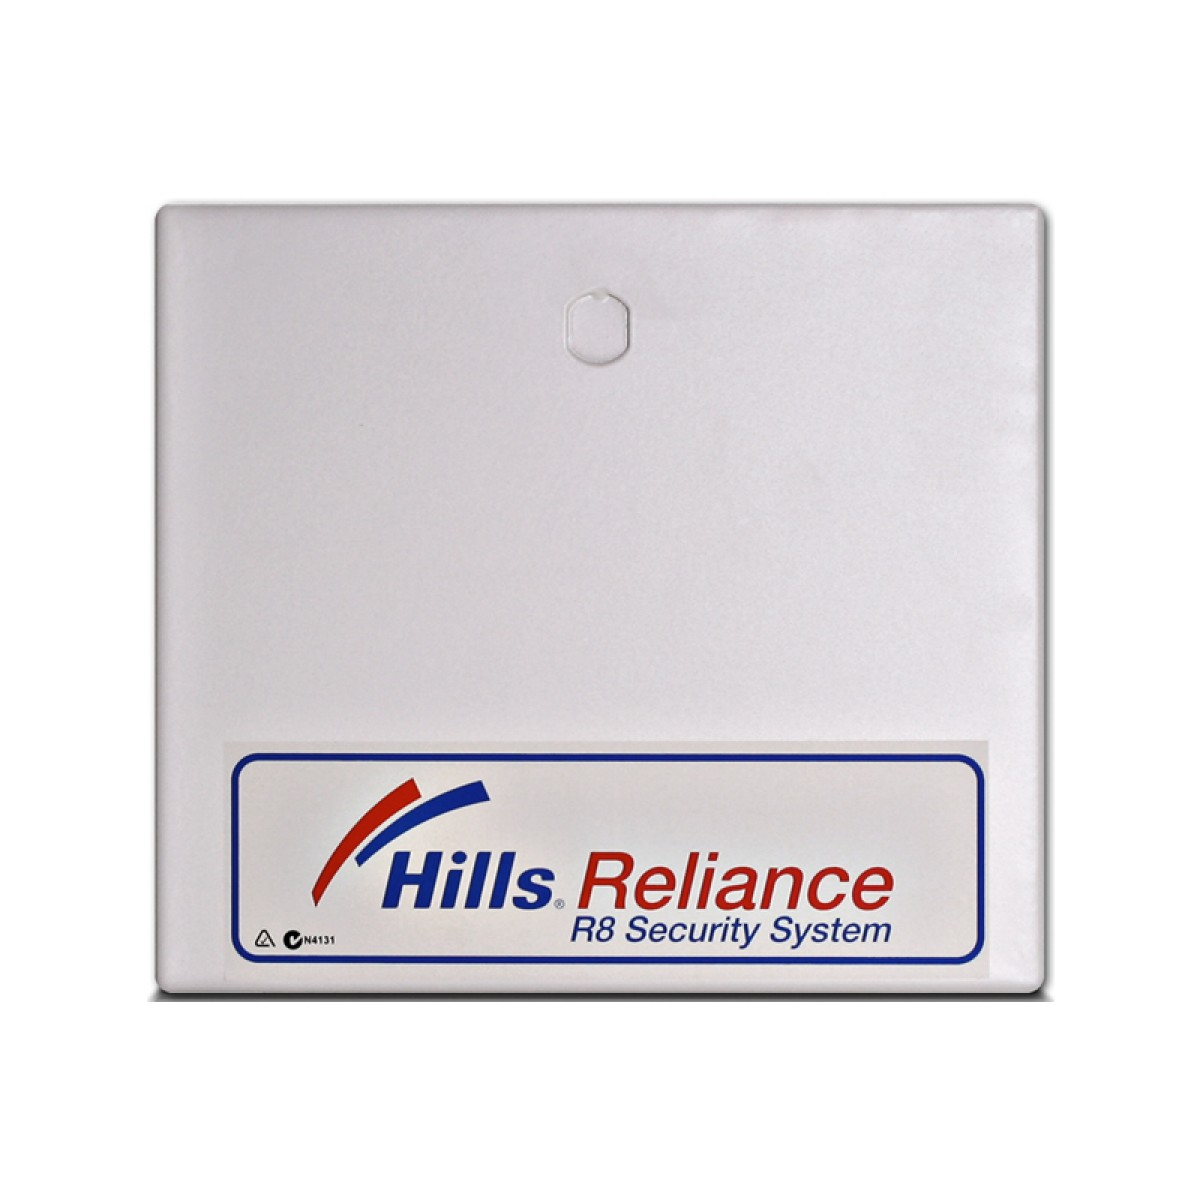 Hills Reliance R8-S4697 R8 Control Panel